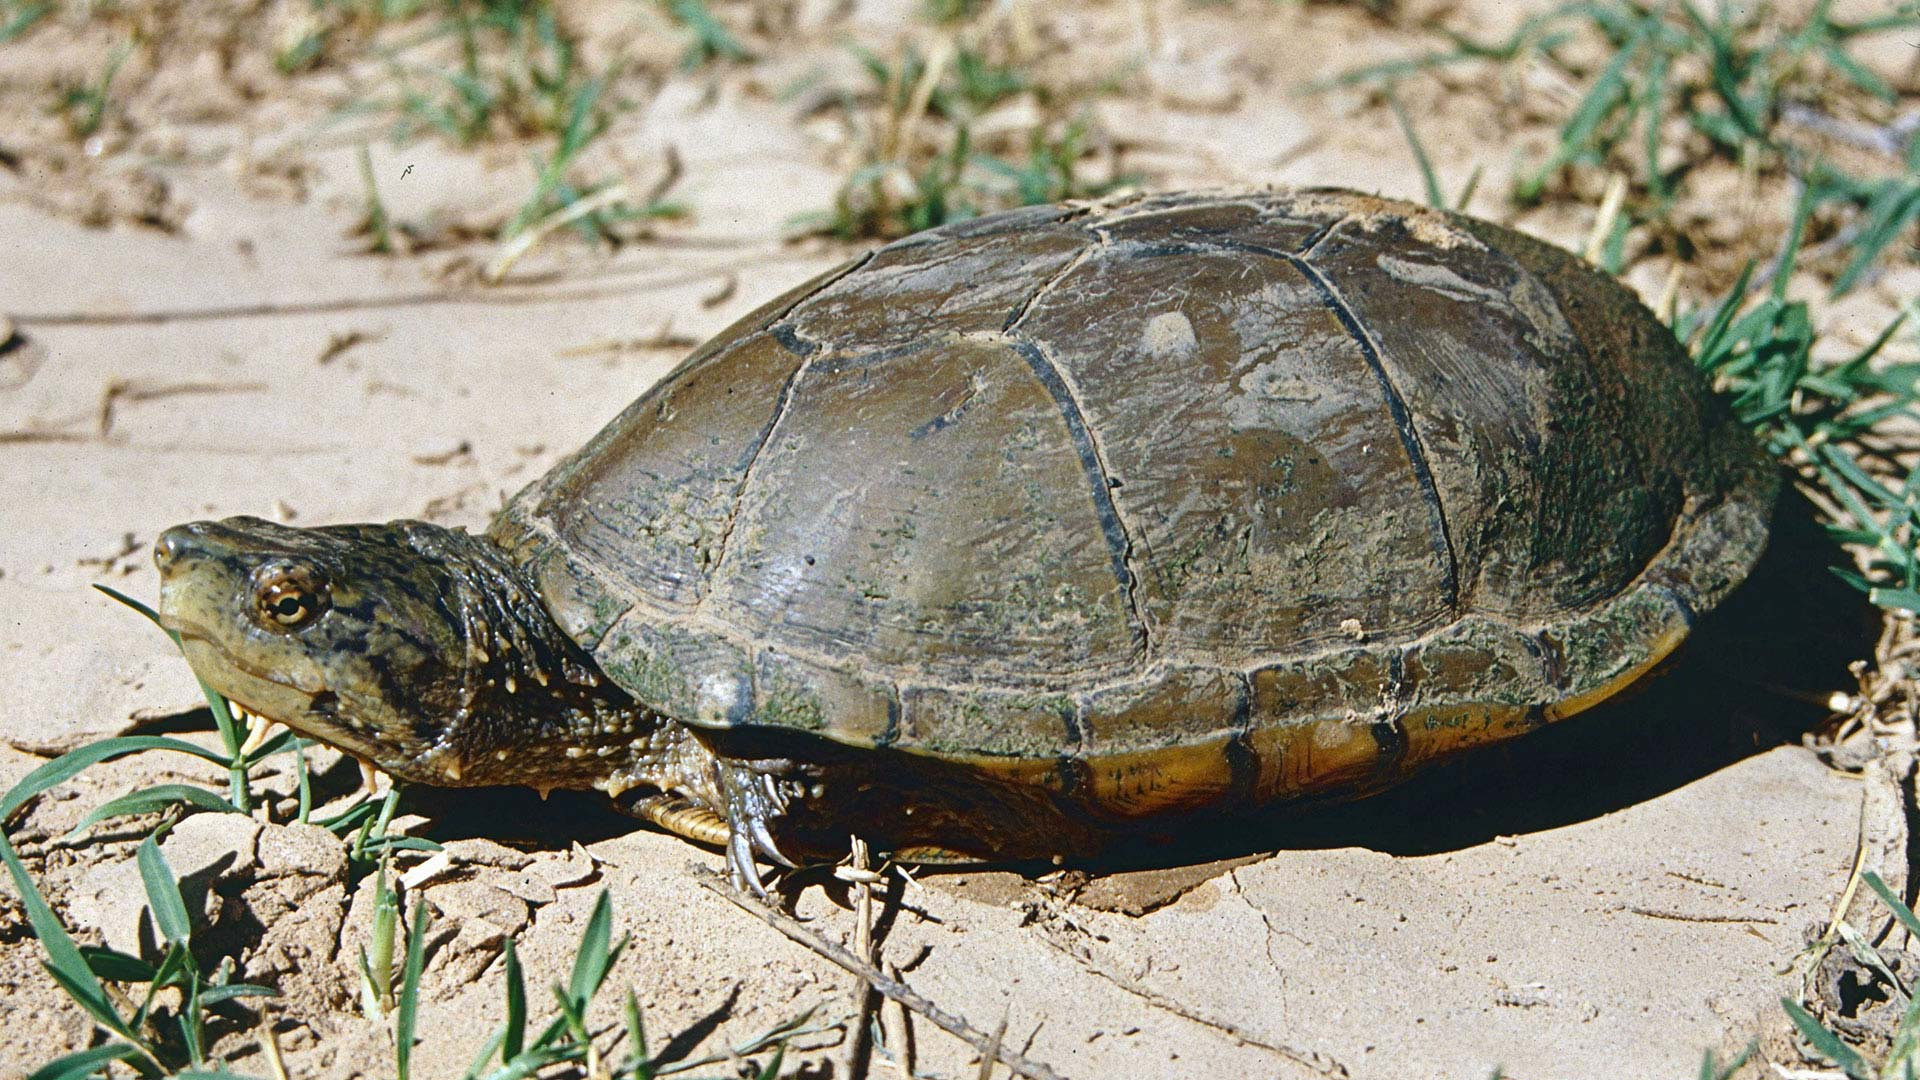 The US Fish and Wildlife Service says the Sonoyta mud turtle is in danger of going extinct. There are five known populations, one is Arizona and four in Sonora.